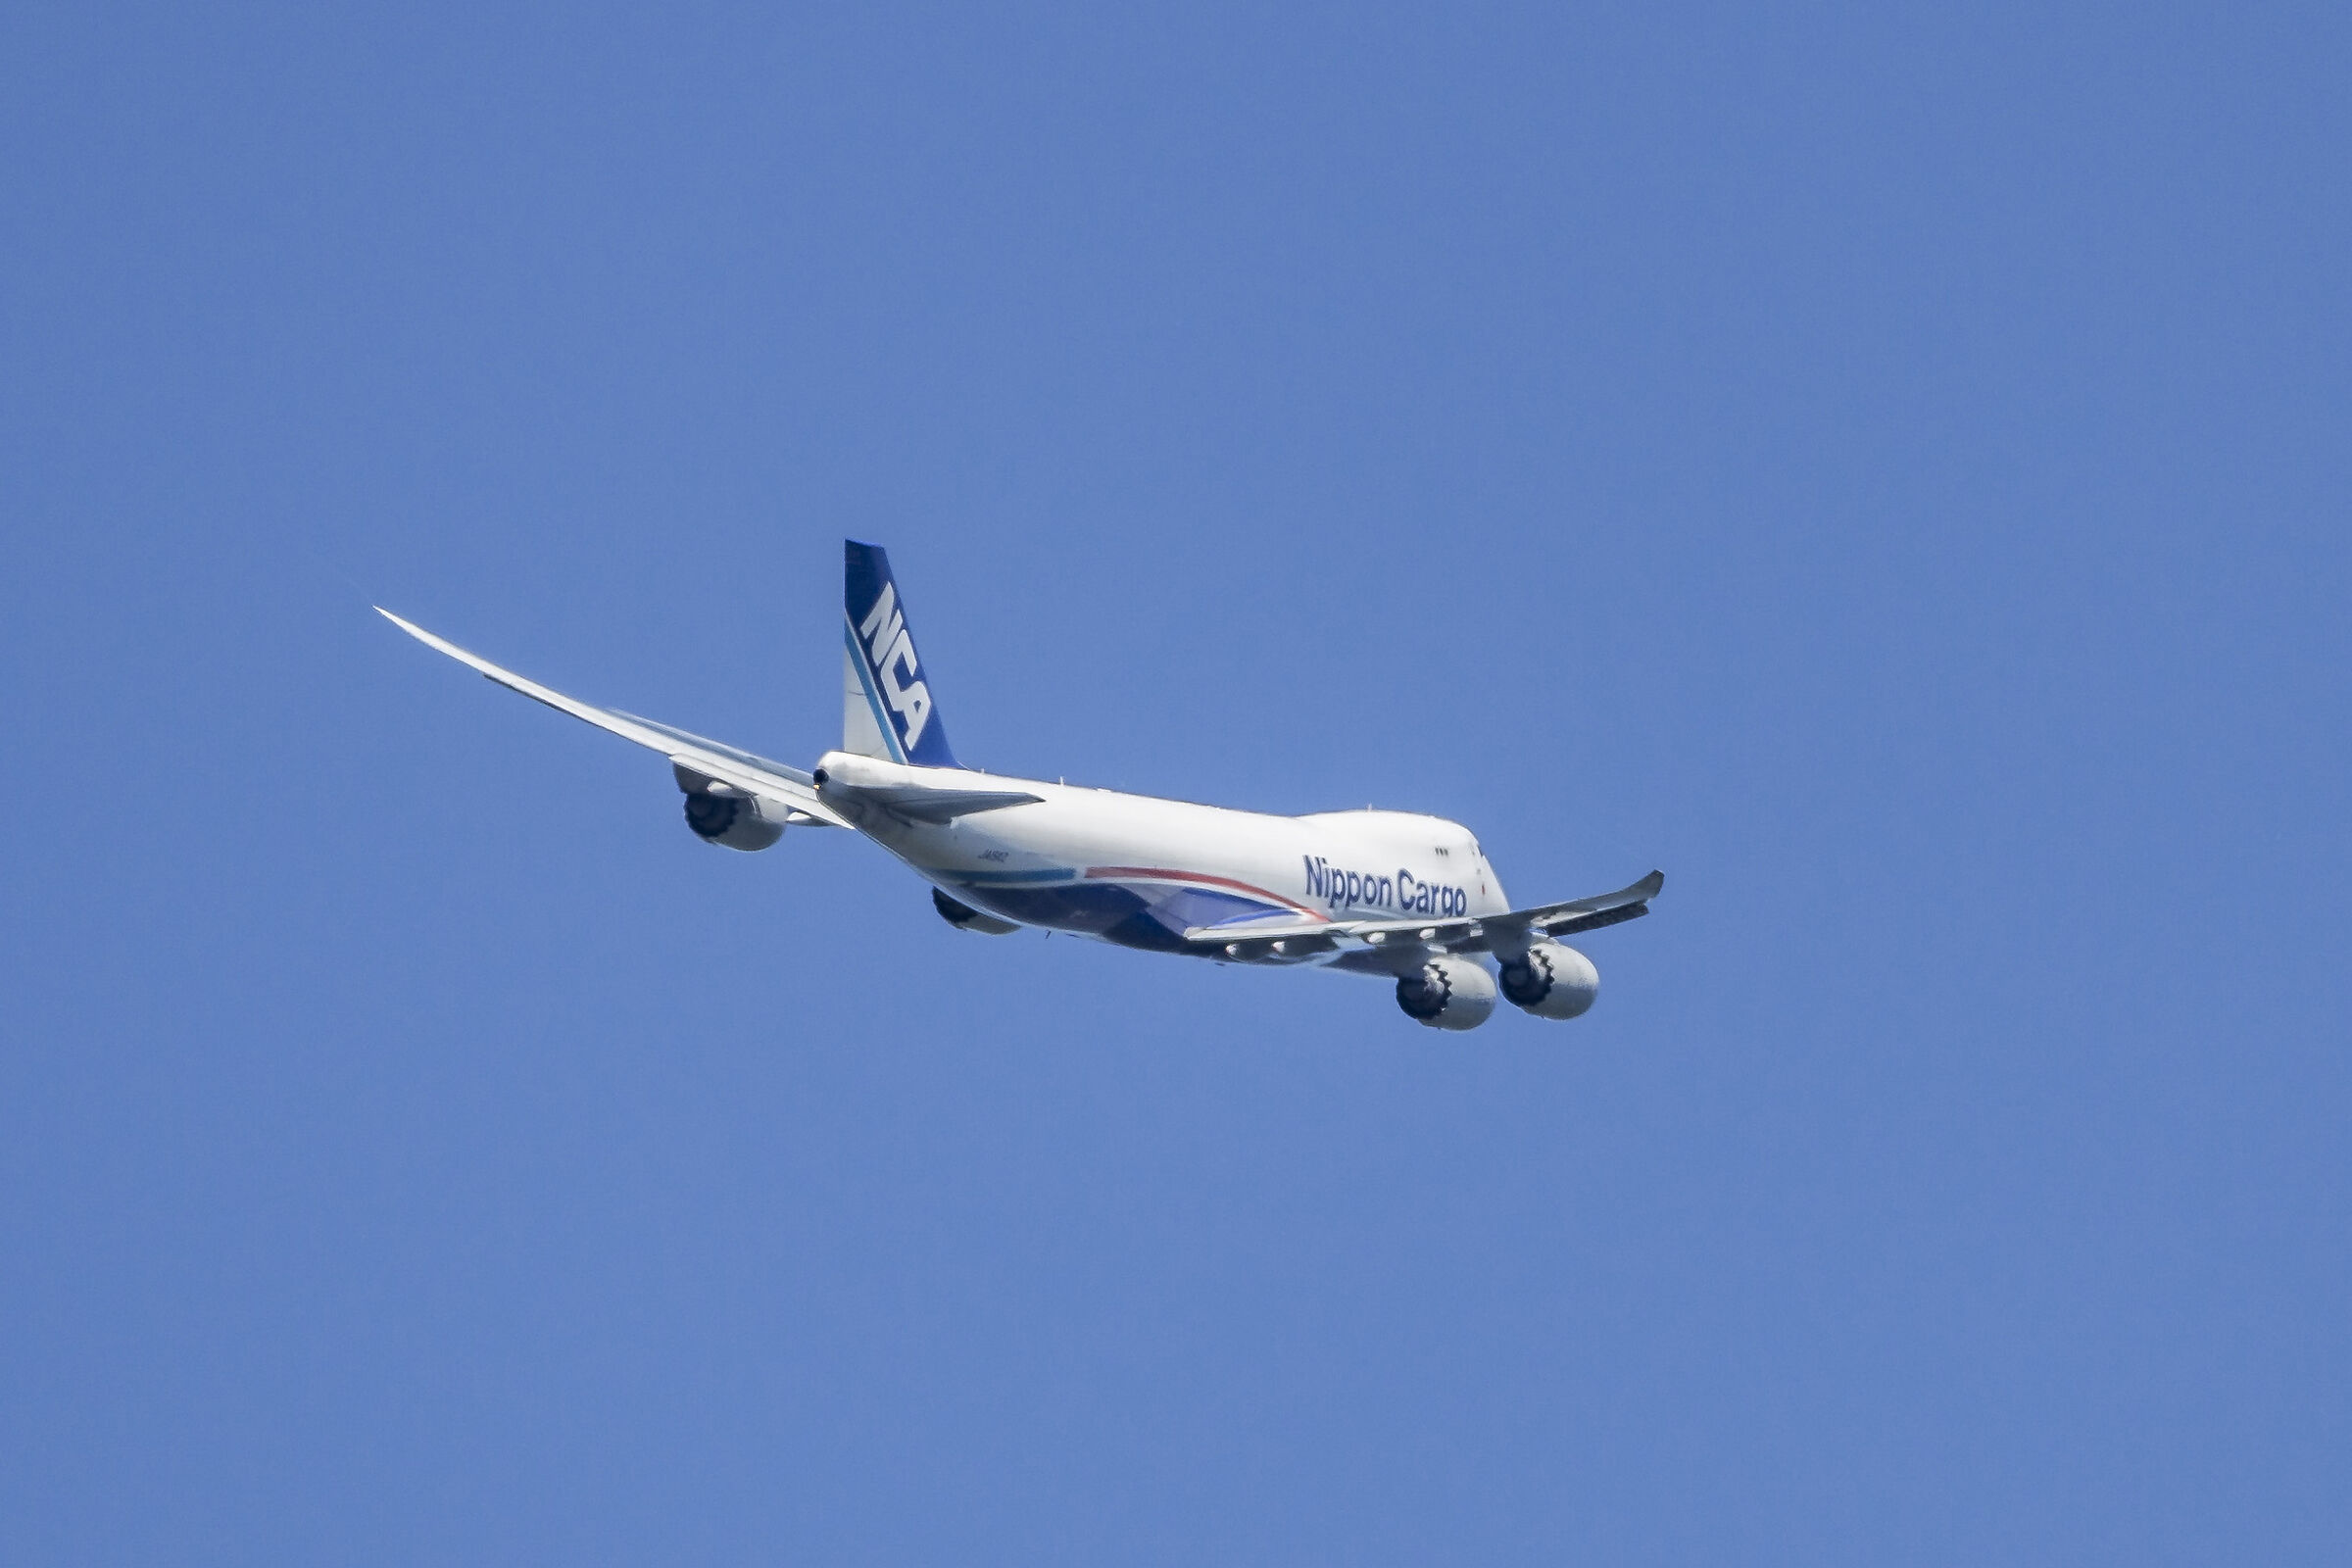 Boeing 747-8f - Nippon Cargo Airlines - NCA...